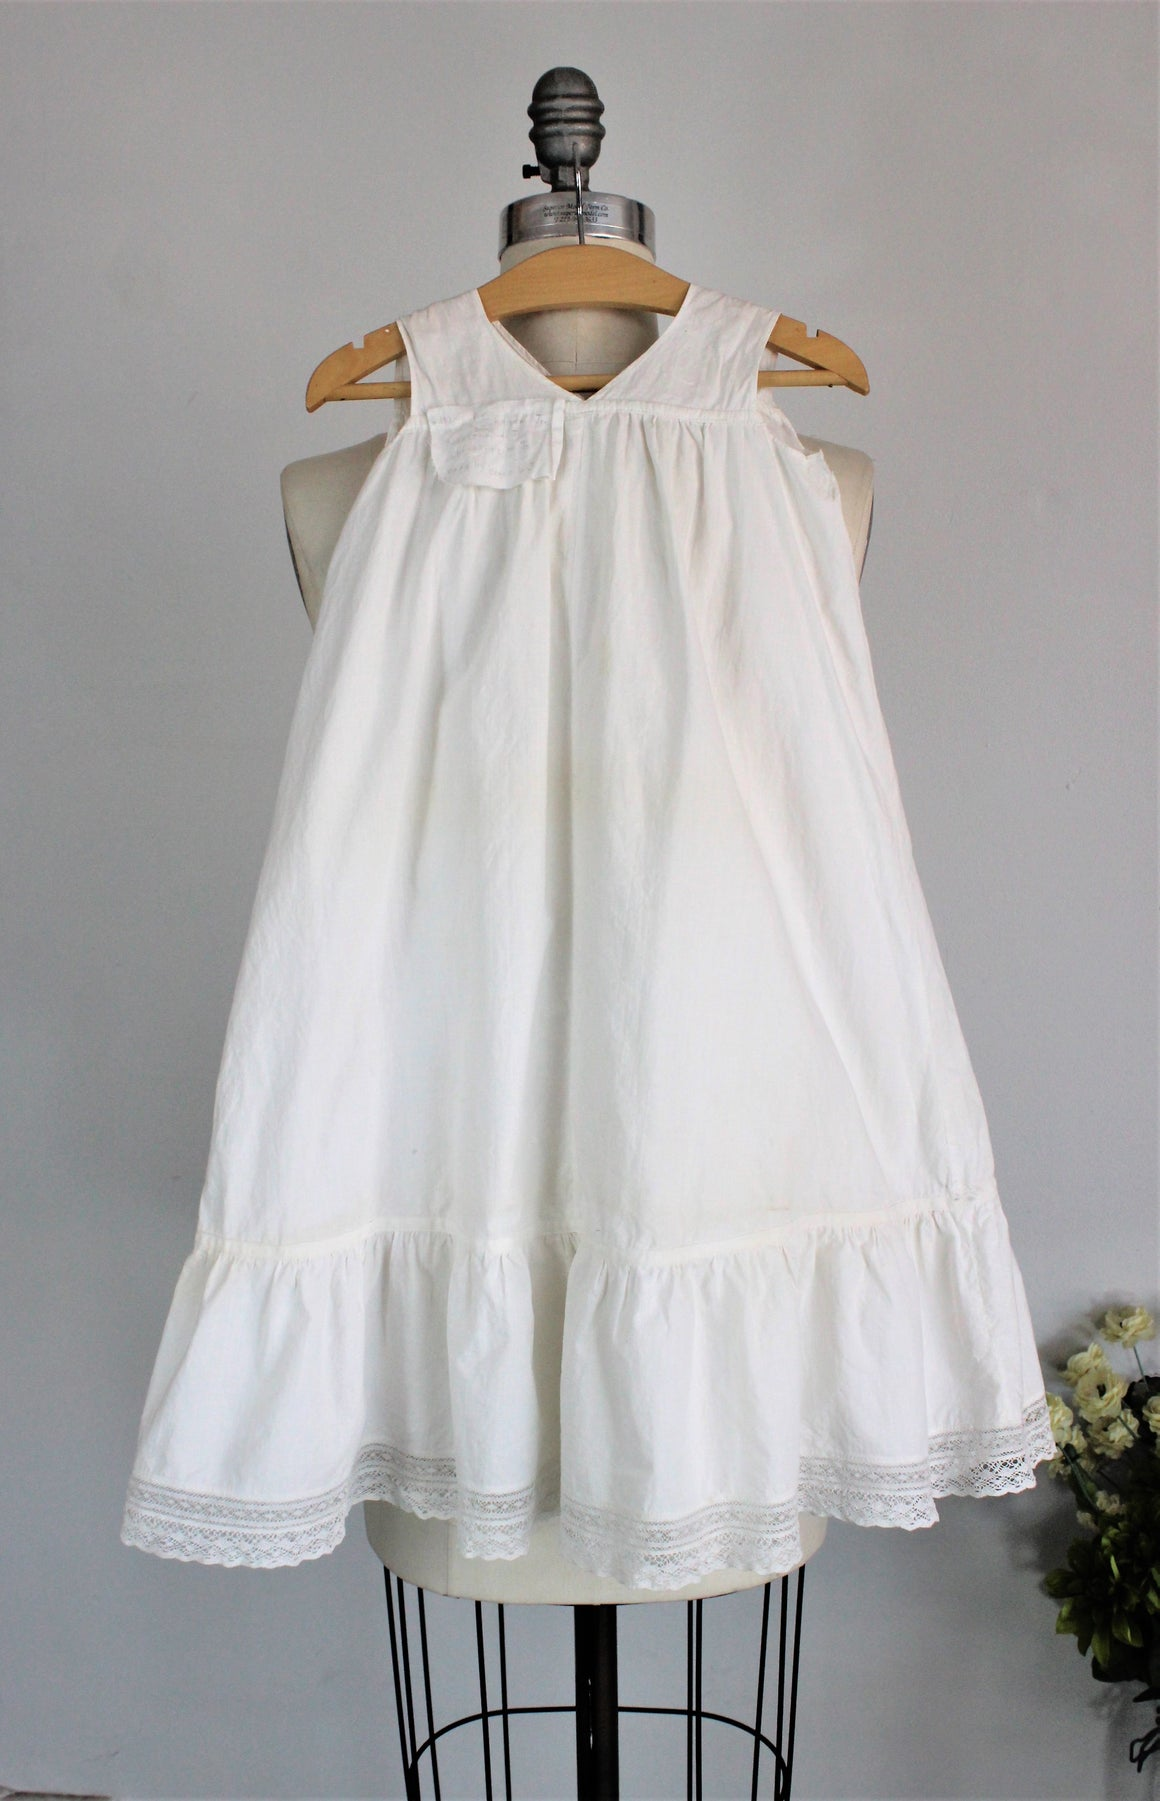 Vintage 1910s Babys White Cotton Christening Dress